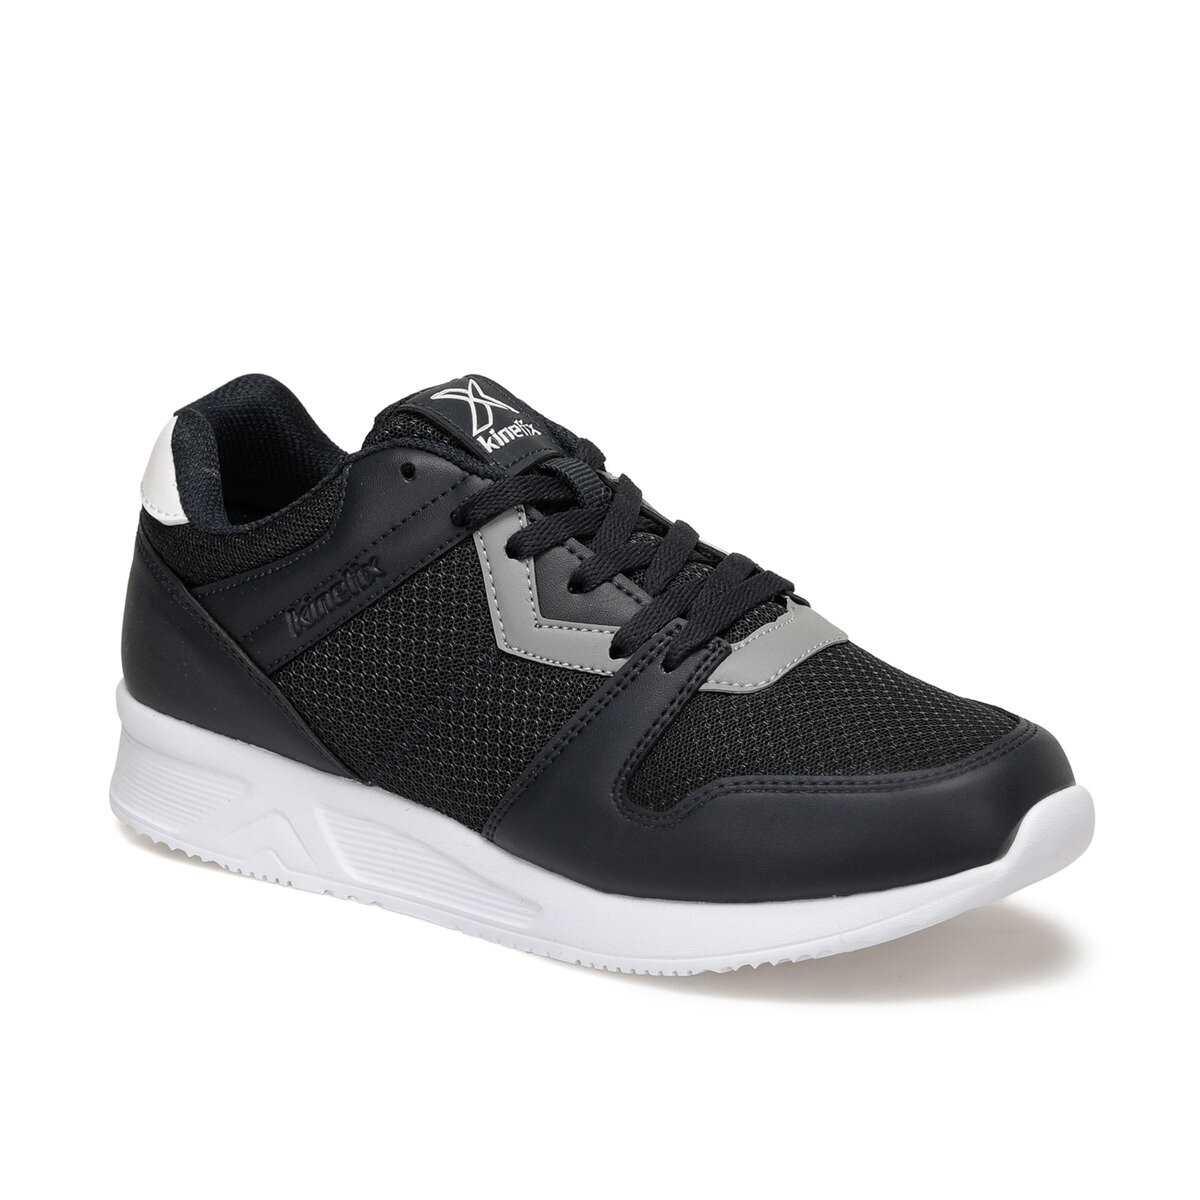 FLO SAGEL M Navy Blue Men 'S Sneaker Shoes KINETIX